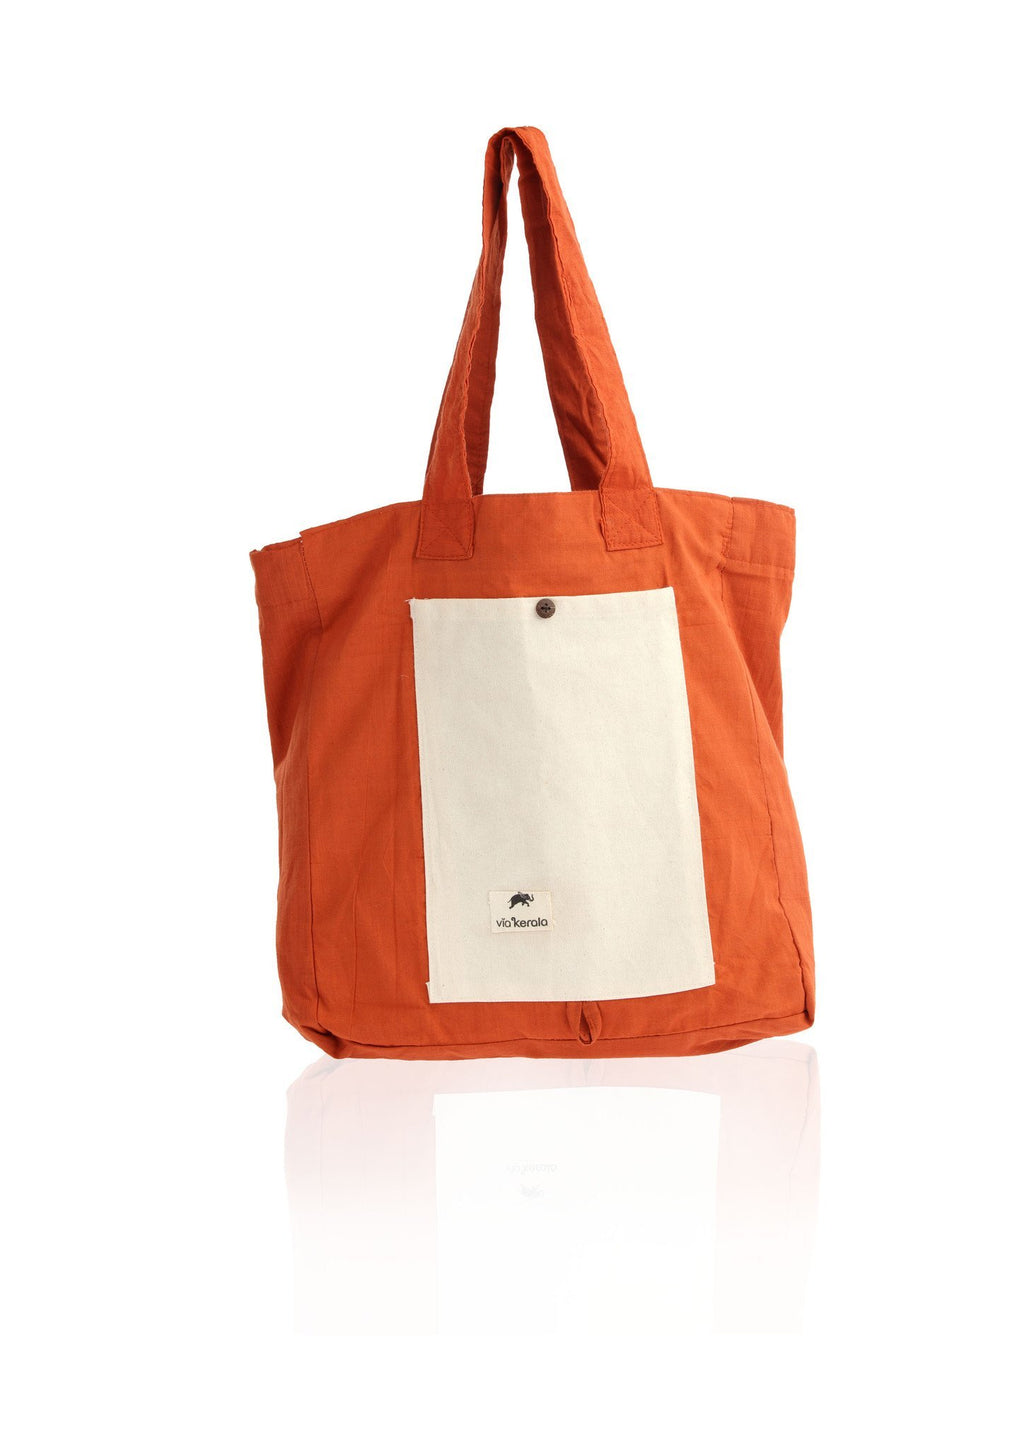 Cotton Kavi with Canvas - Folding Bag